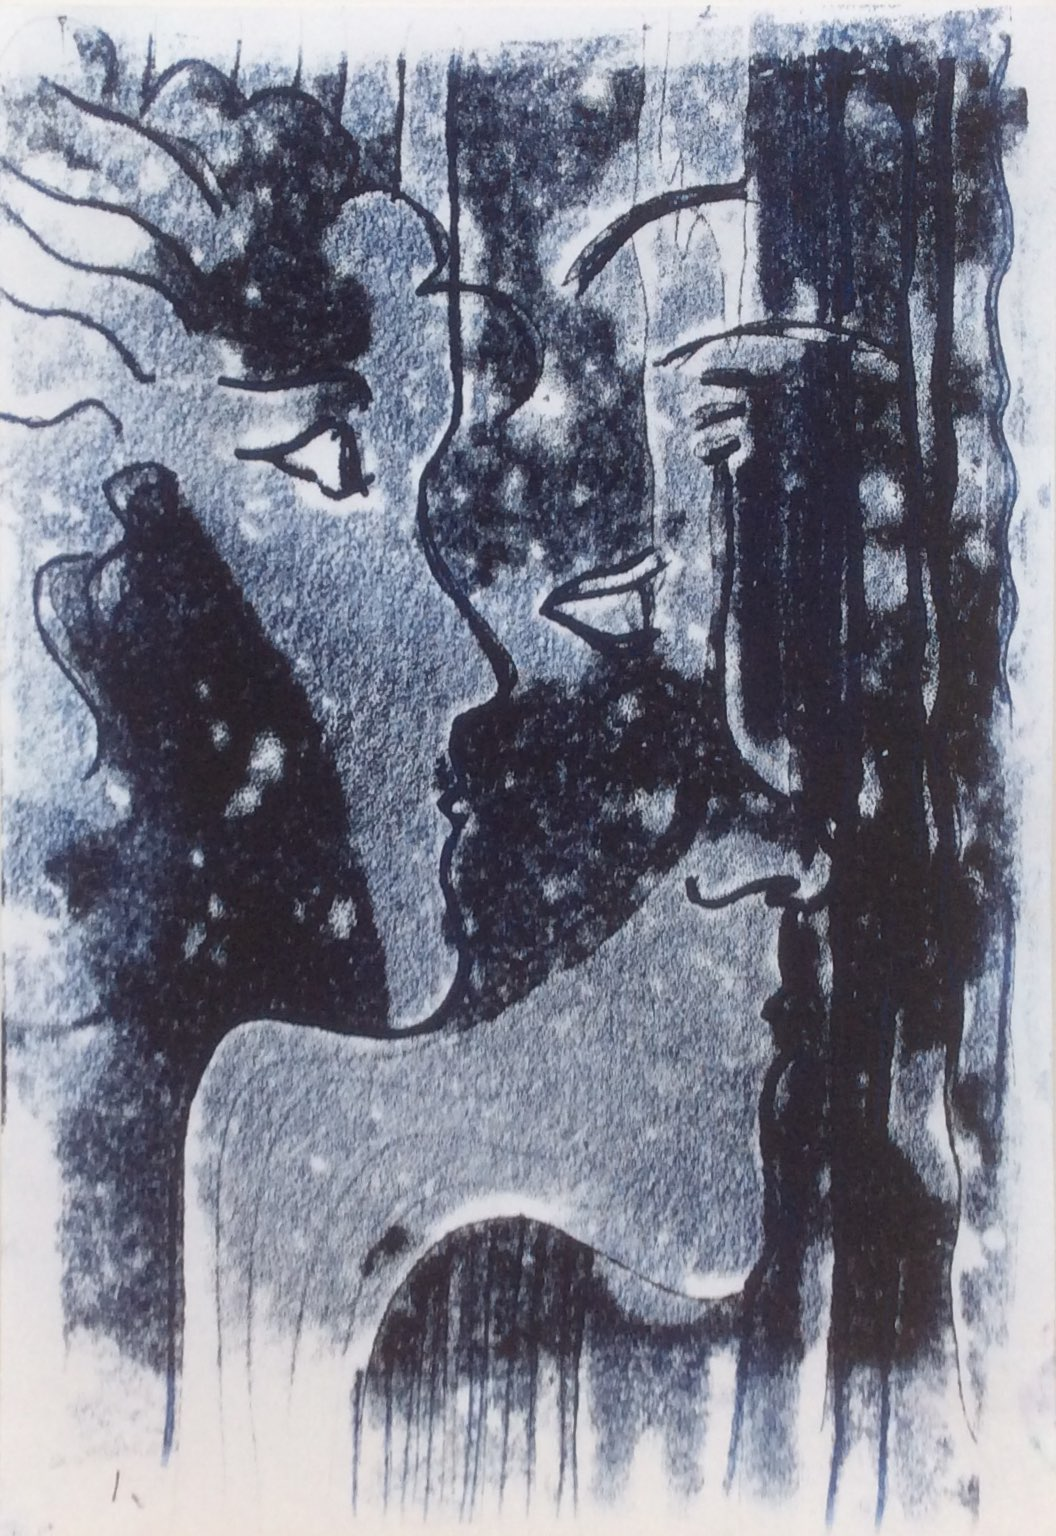 Faces monoprint 21x30